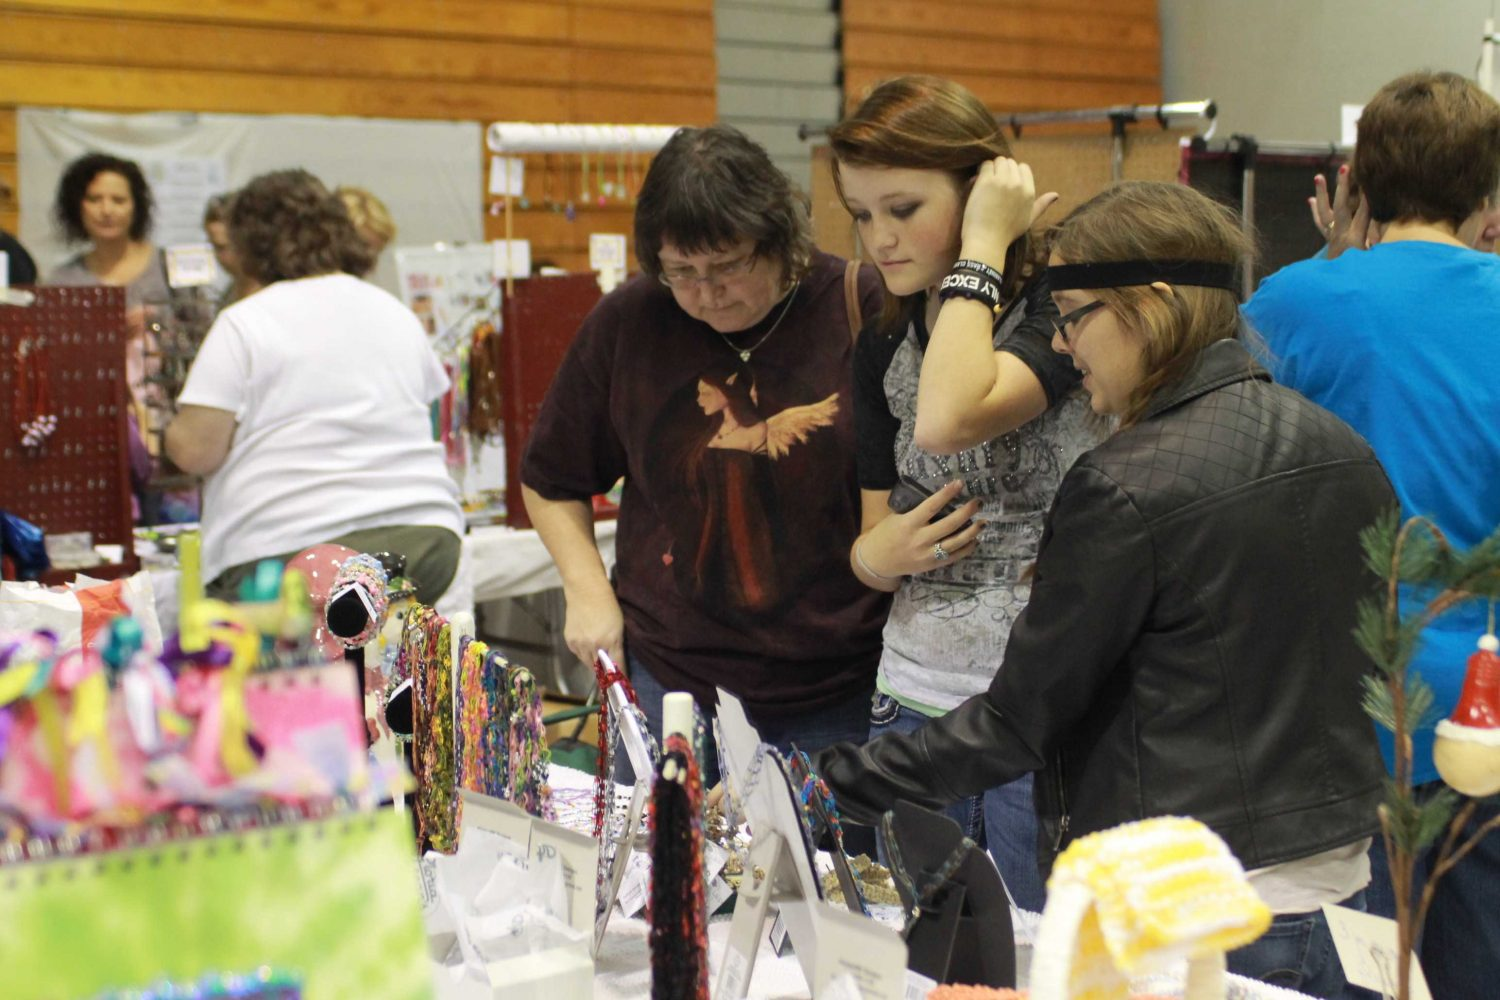 Students check out some of the merchandise available for purchase at last year's Craft Fair. (file photo)